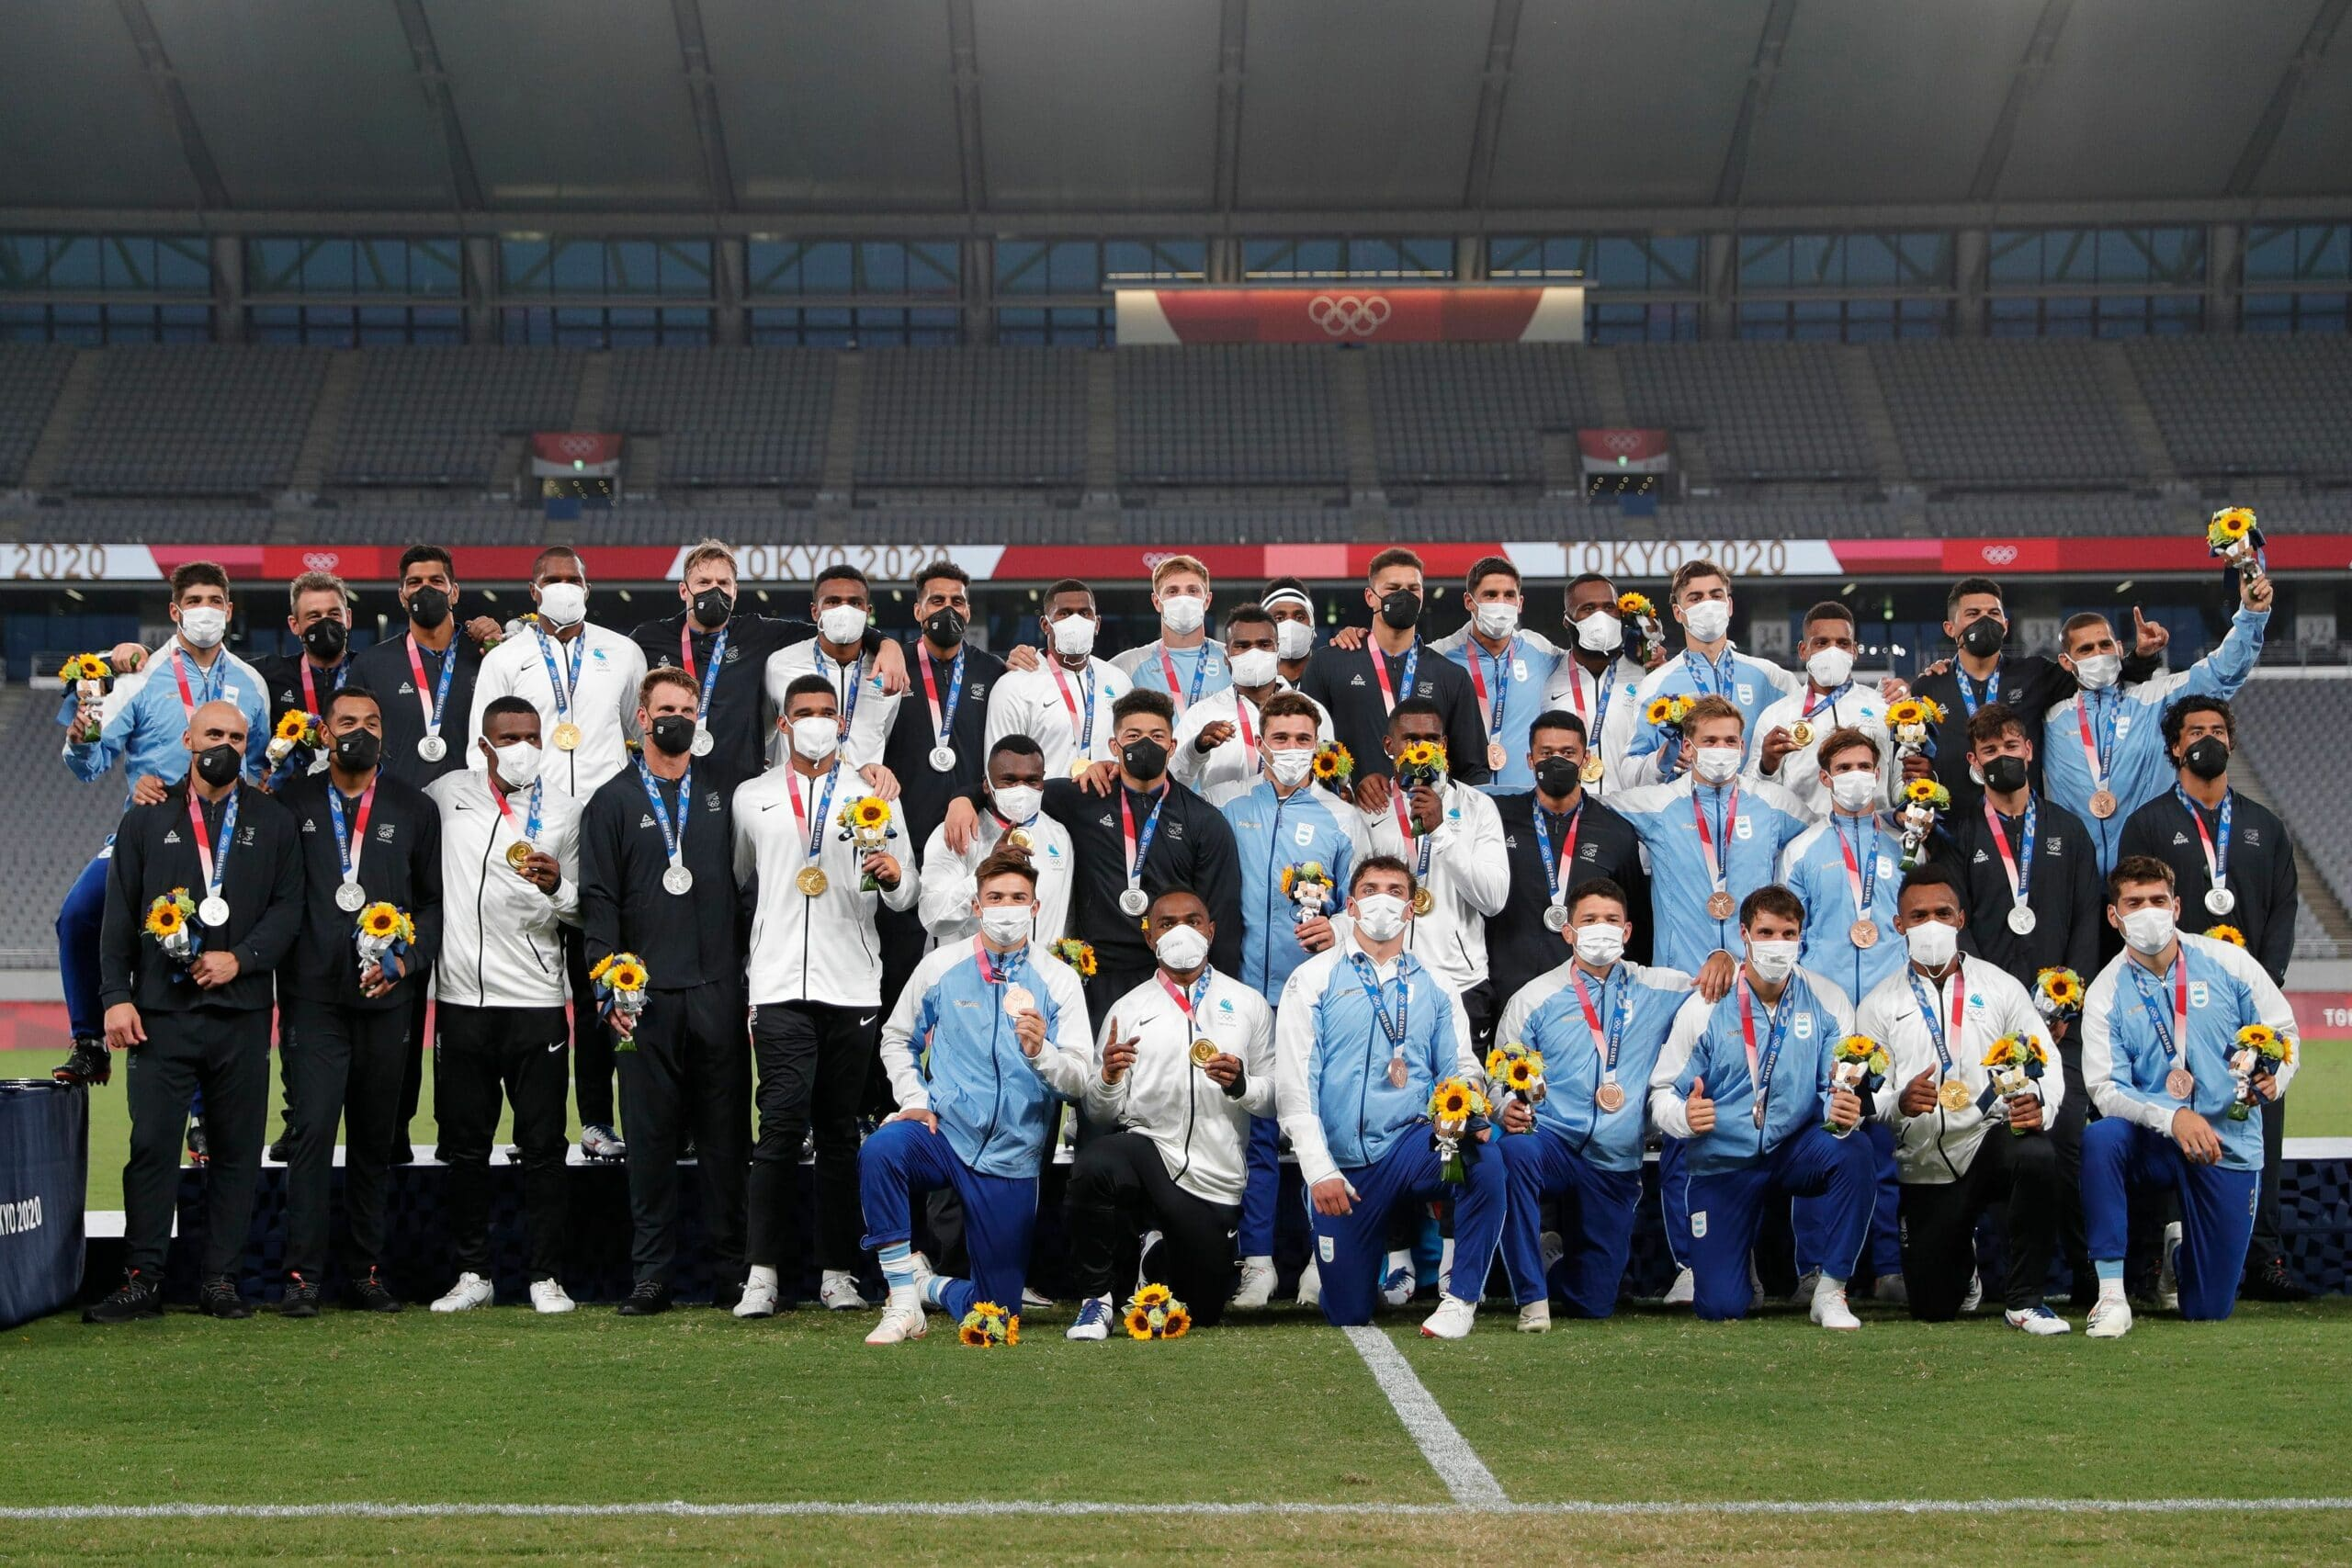 fiji celebrate at the tokyo olympic games 2020 scaled